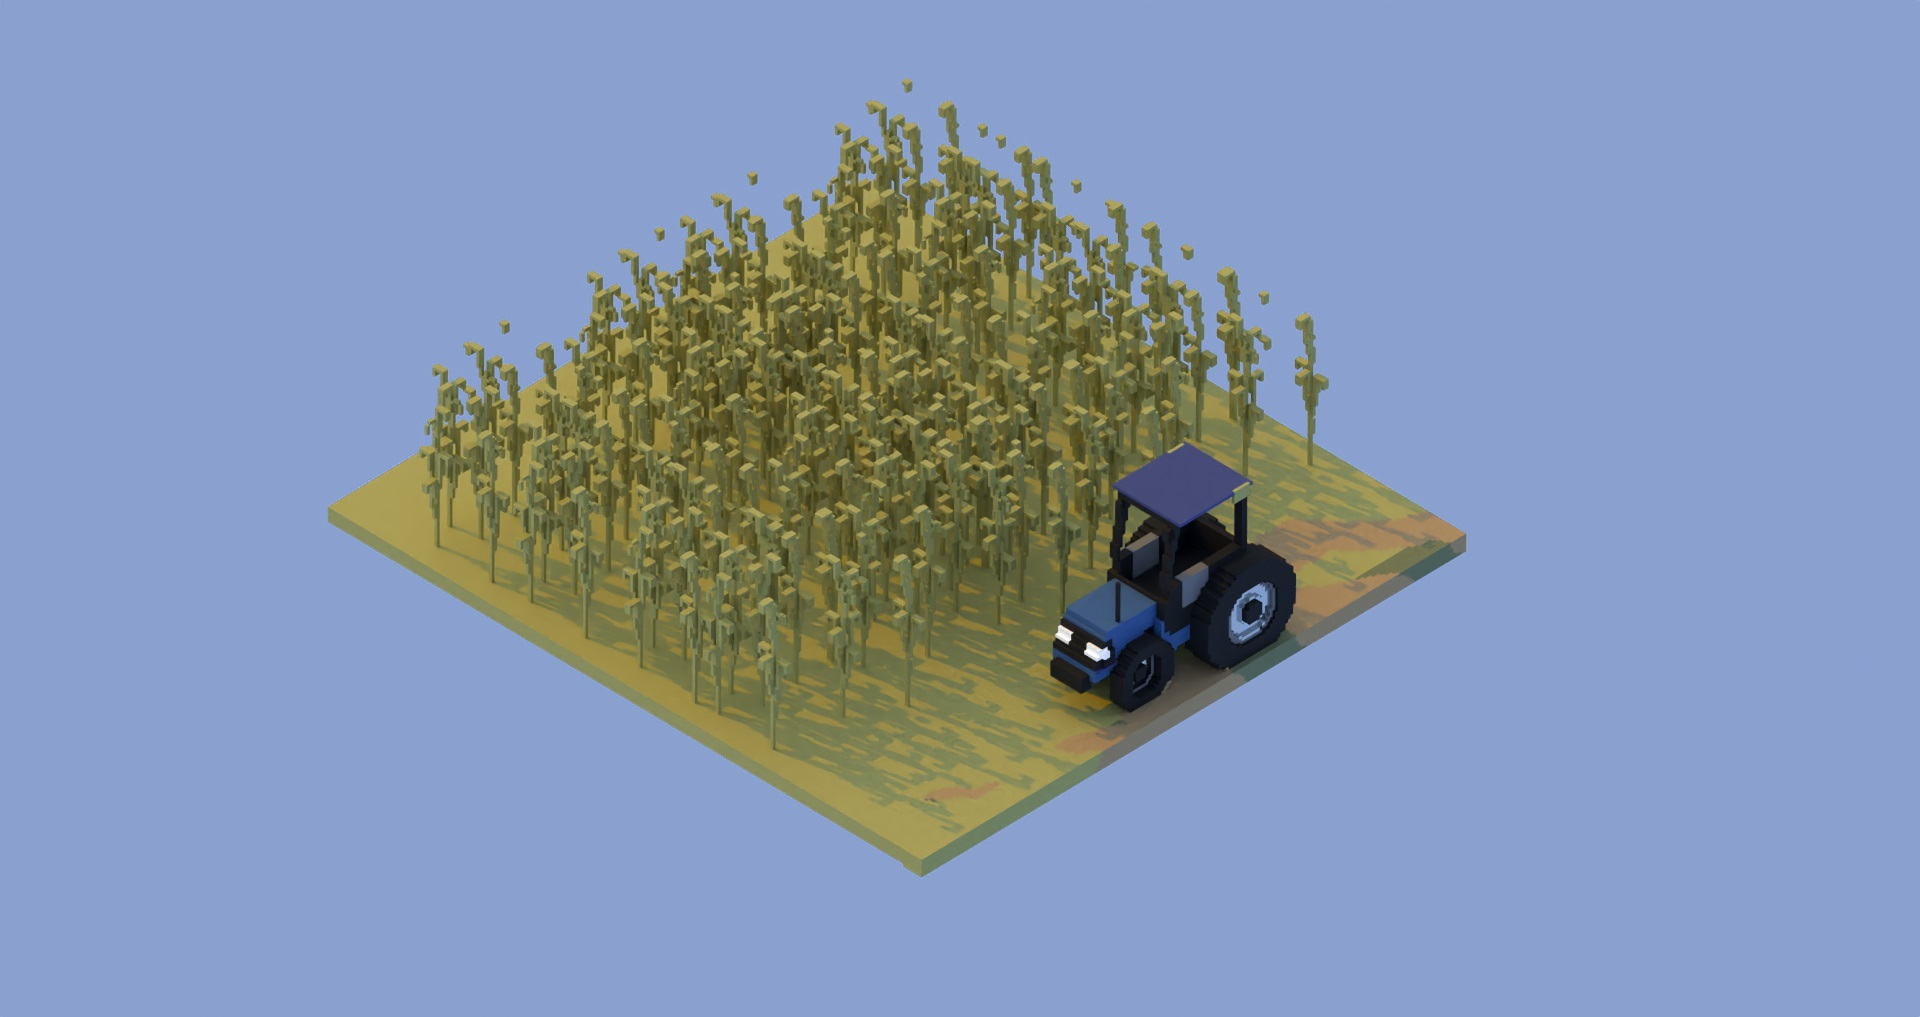 Cornfield and Tractor, isometric voxel art scene created and rendered in Avoyd by Rebecca Michalak